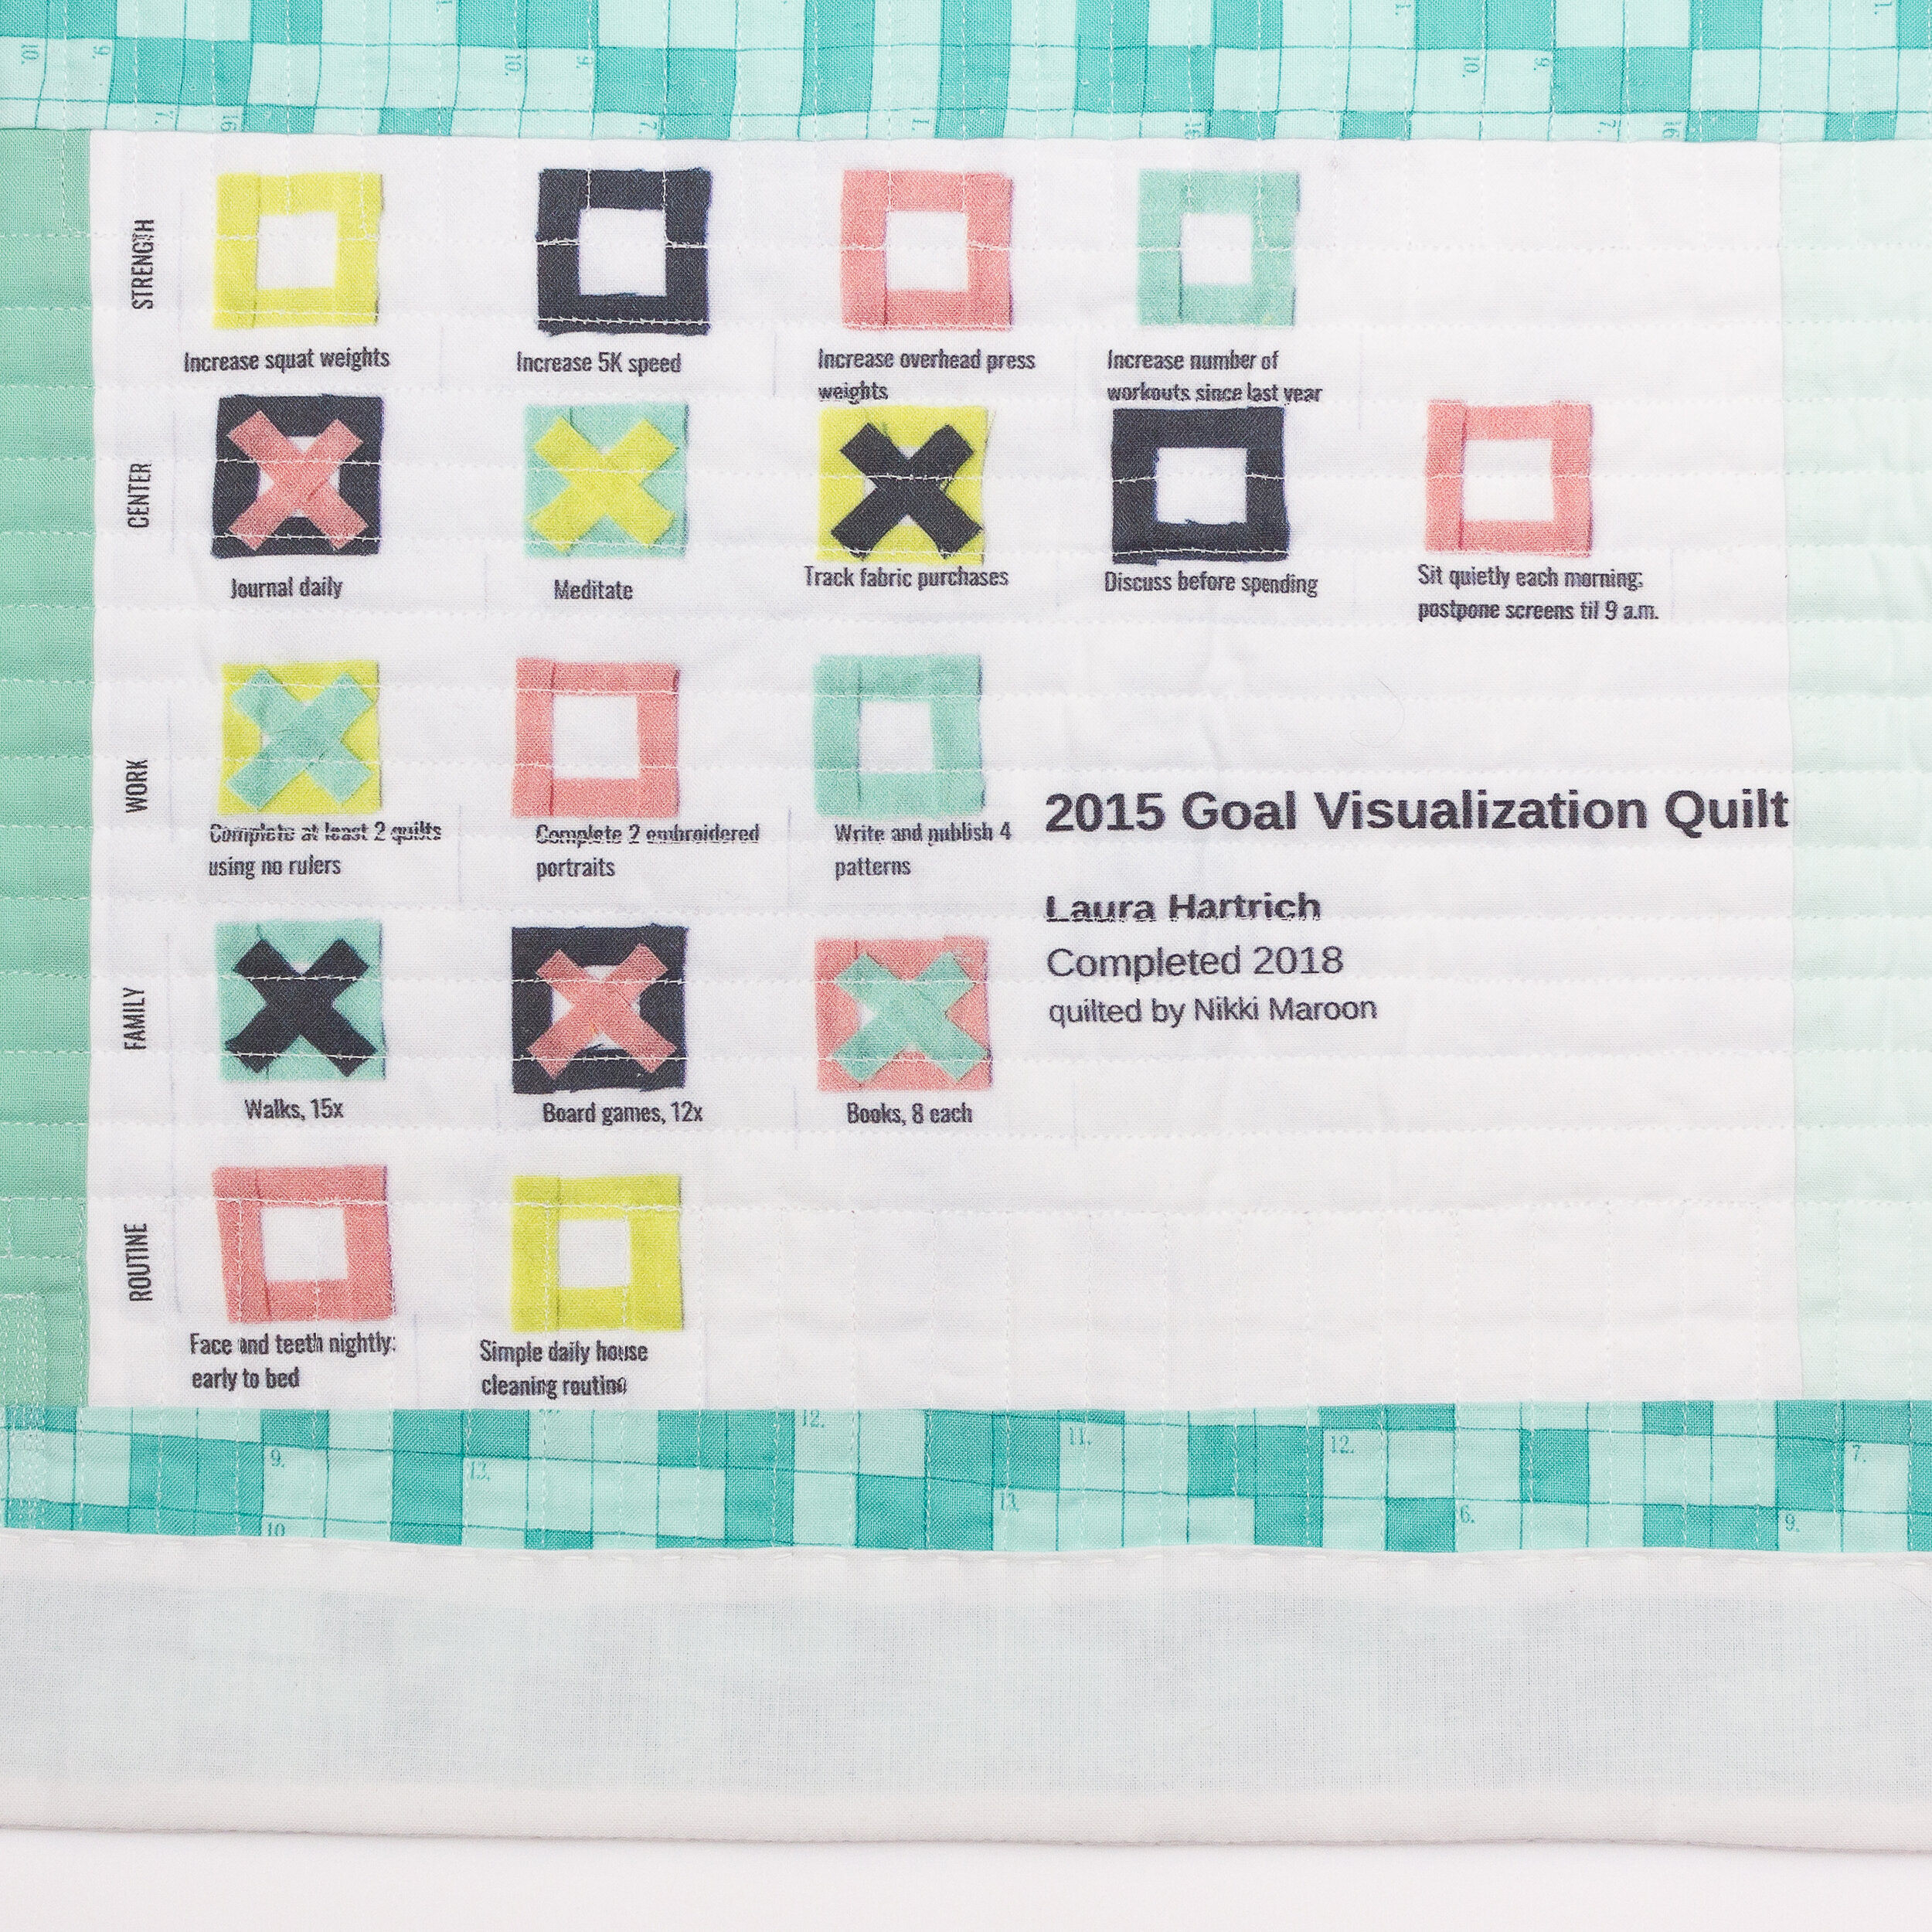 2015 Goal Visualization Quilt, label